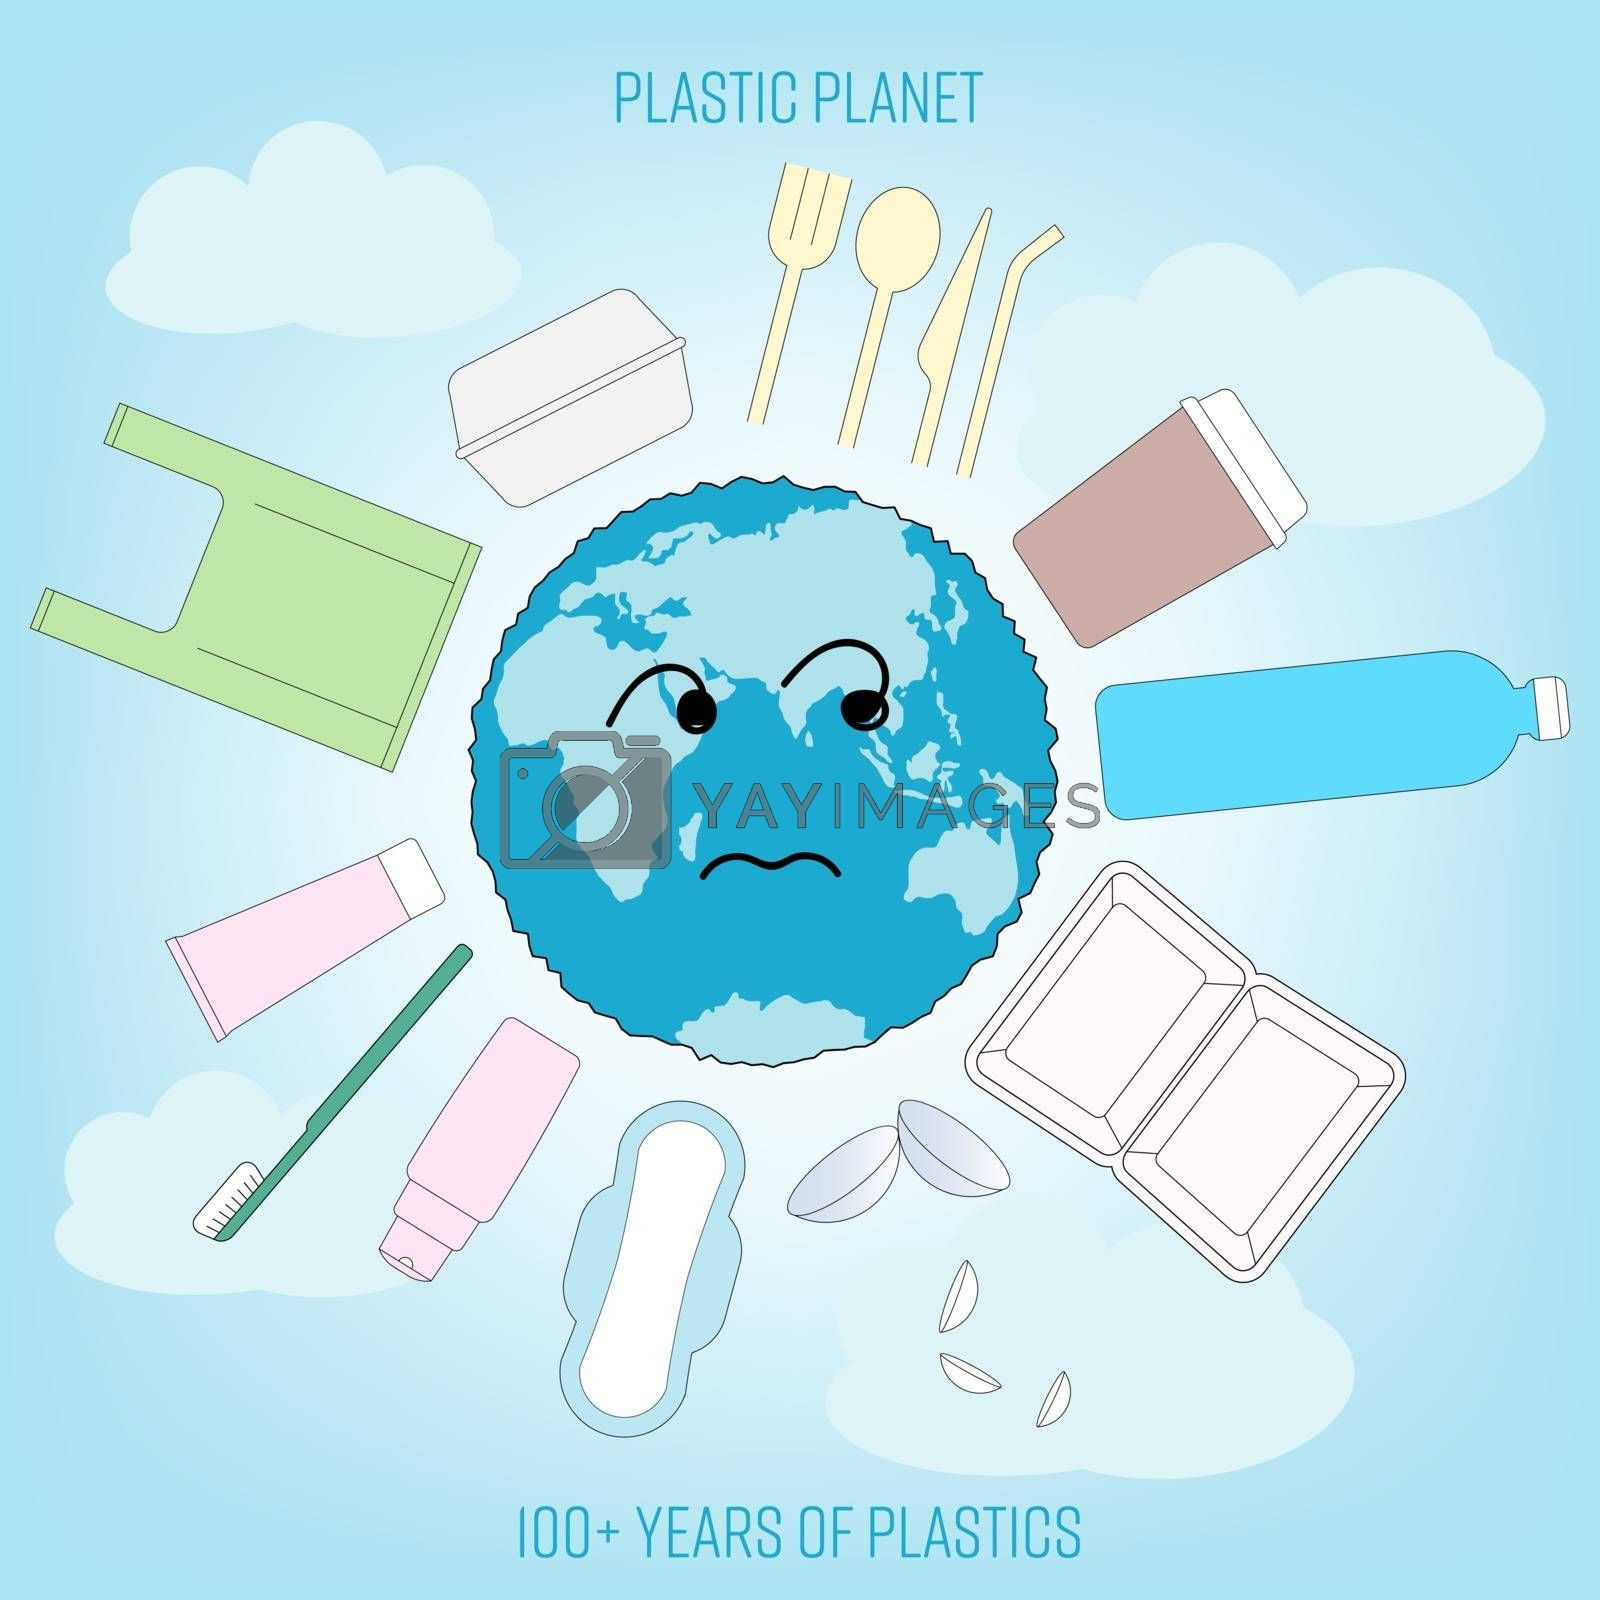 Cartoon earth surrounded by disposable consumer products outline flat icons. Planet suffered from single-use plastic pollution concept. Vector illustration.